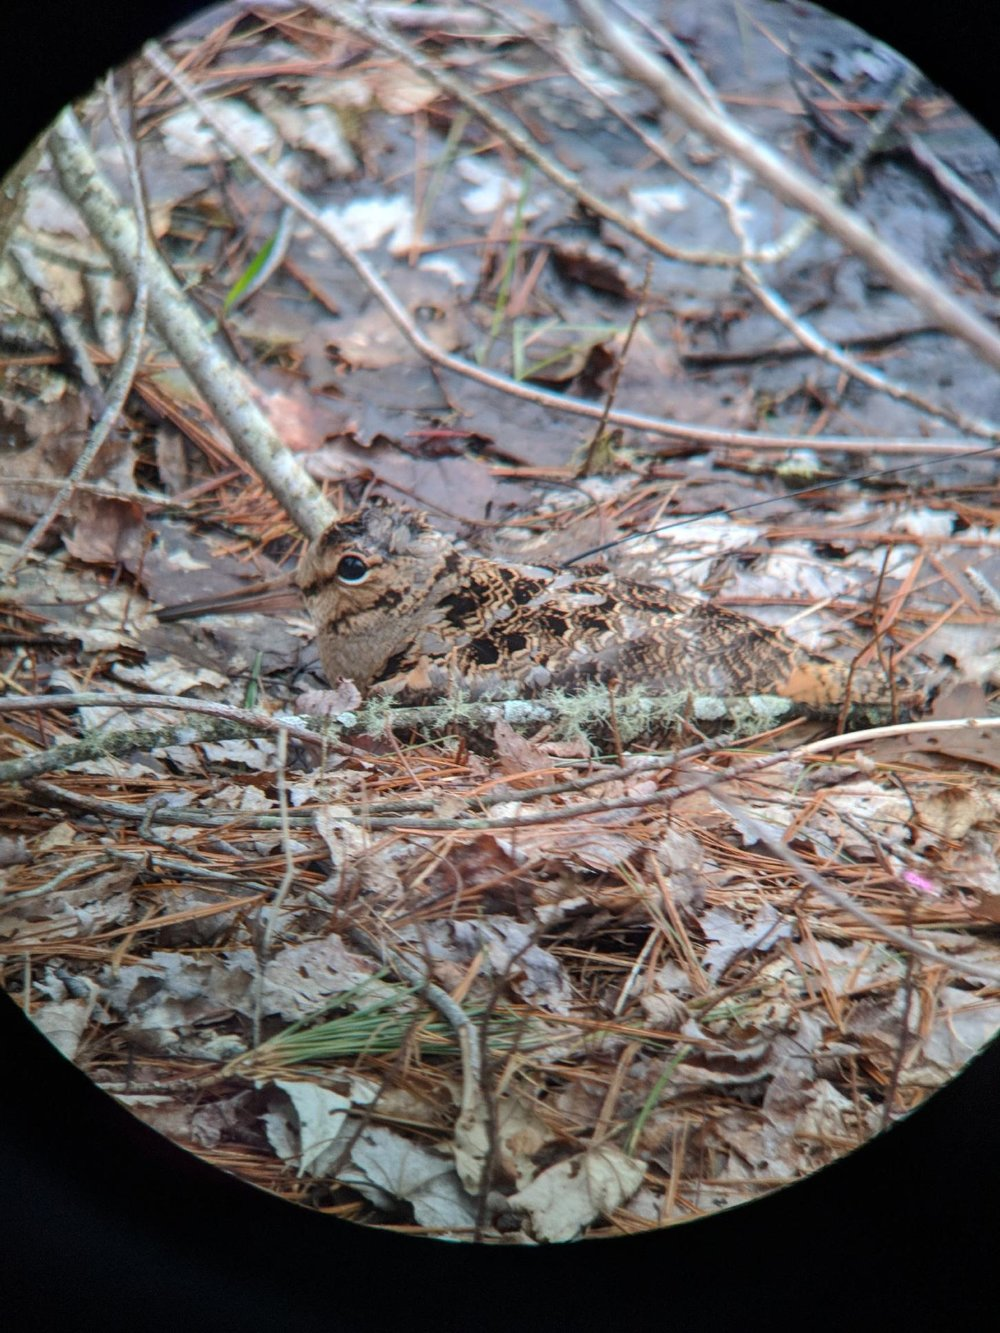 American Woodcock wearing a VHF radio transmitter blending in with the forest floor.  Photo credit Josh Cummings